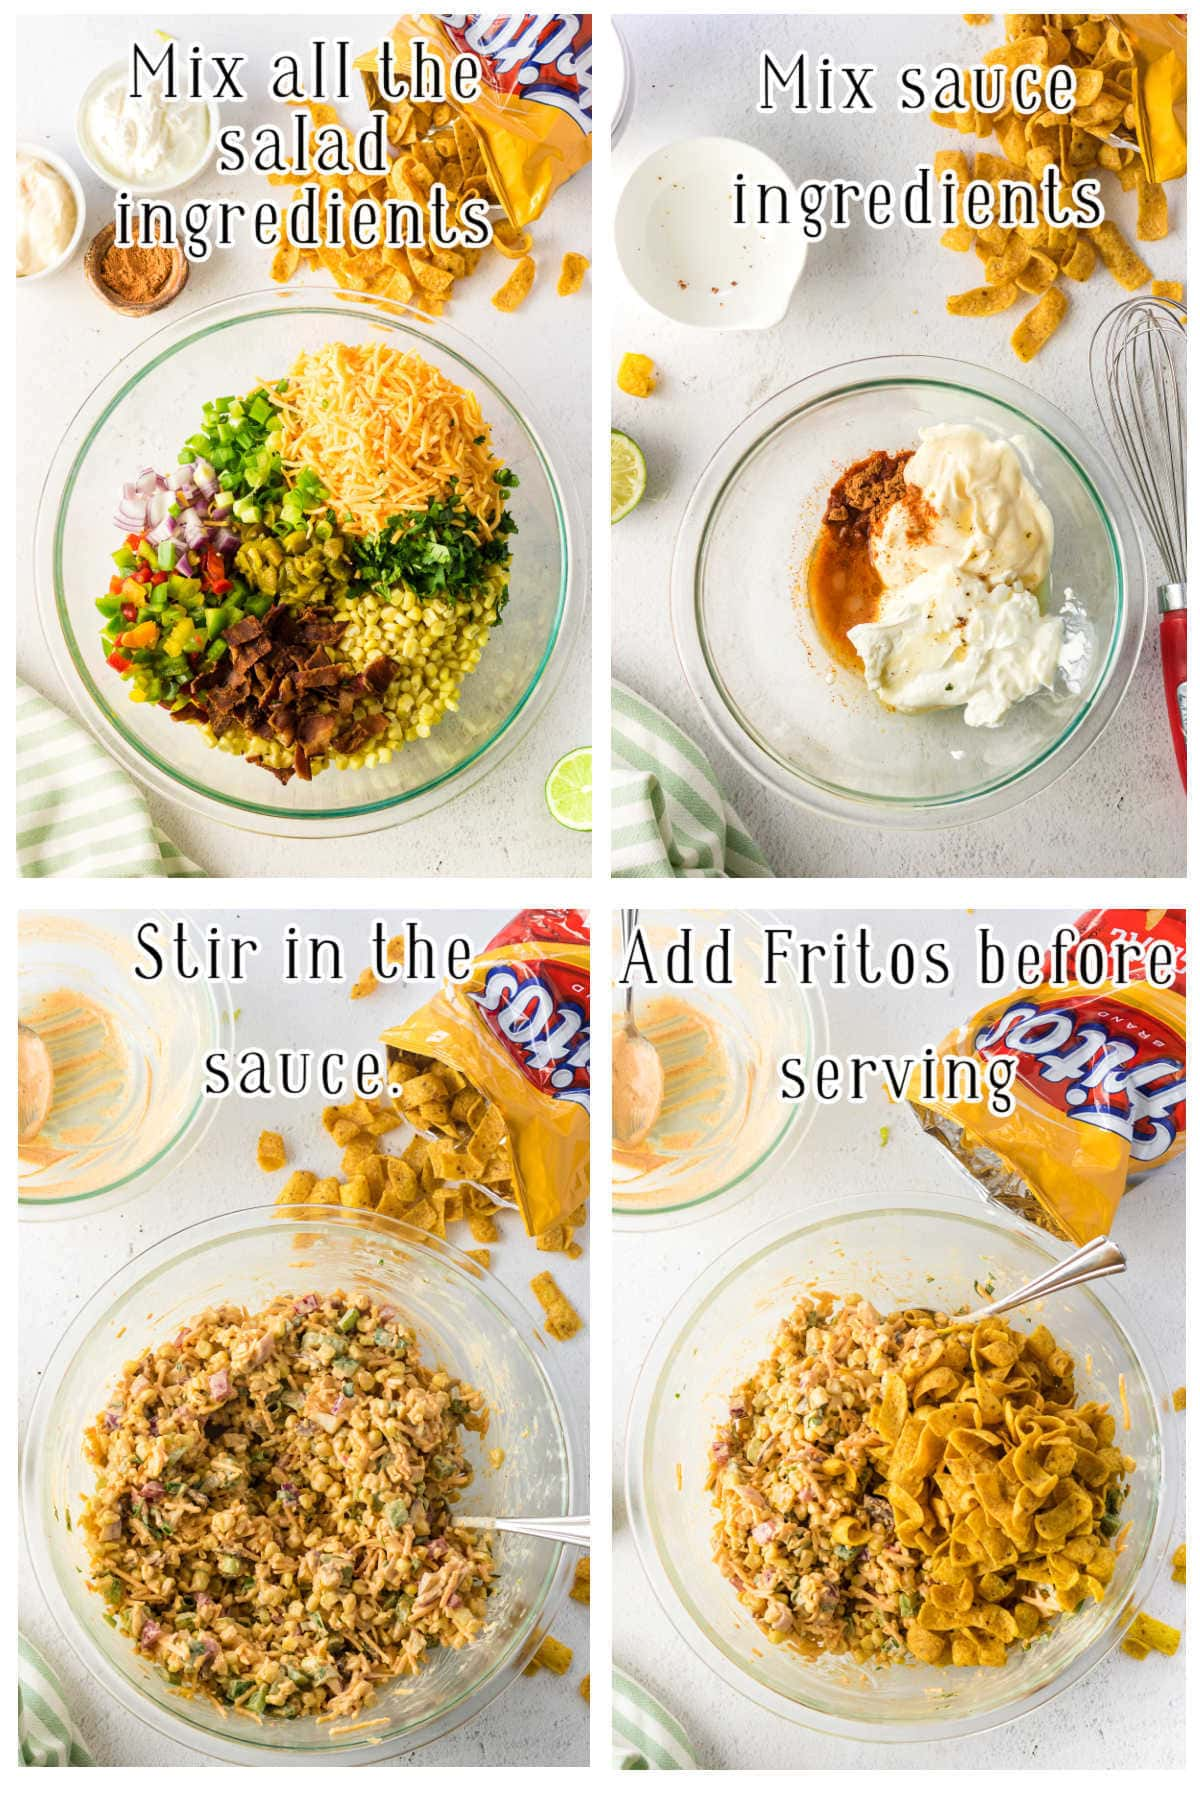 Step by step images showing how to make Frito salad.